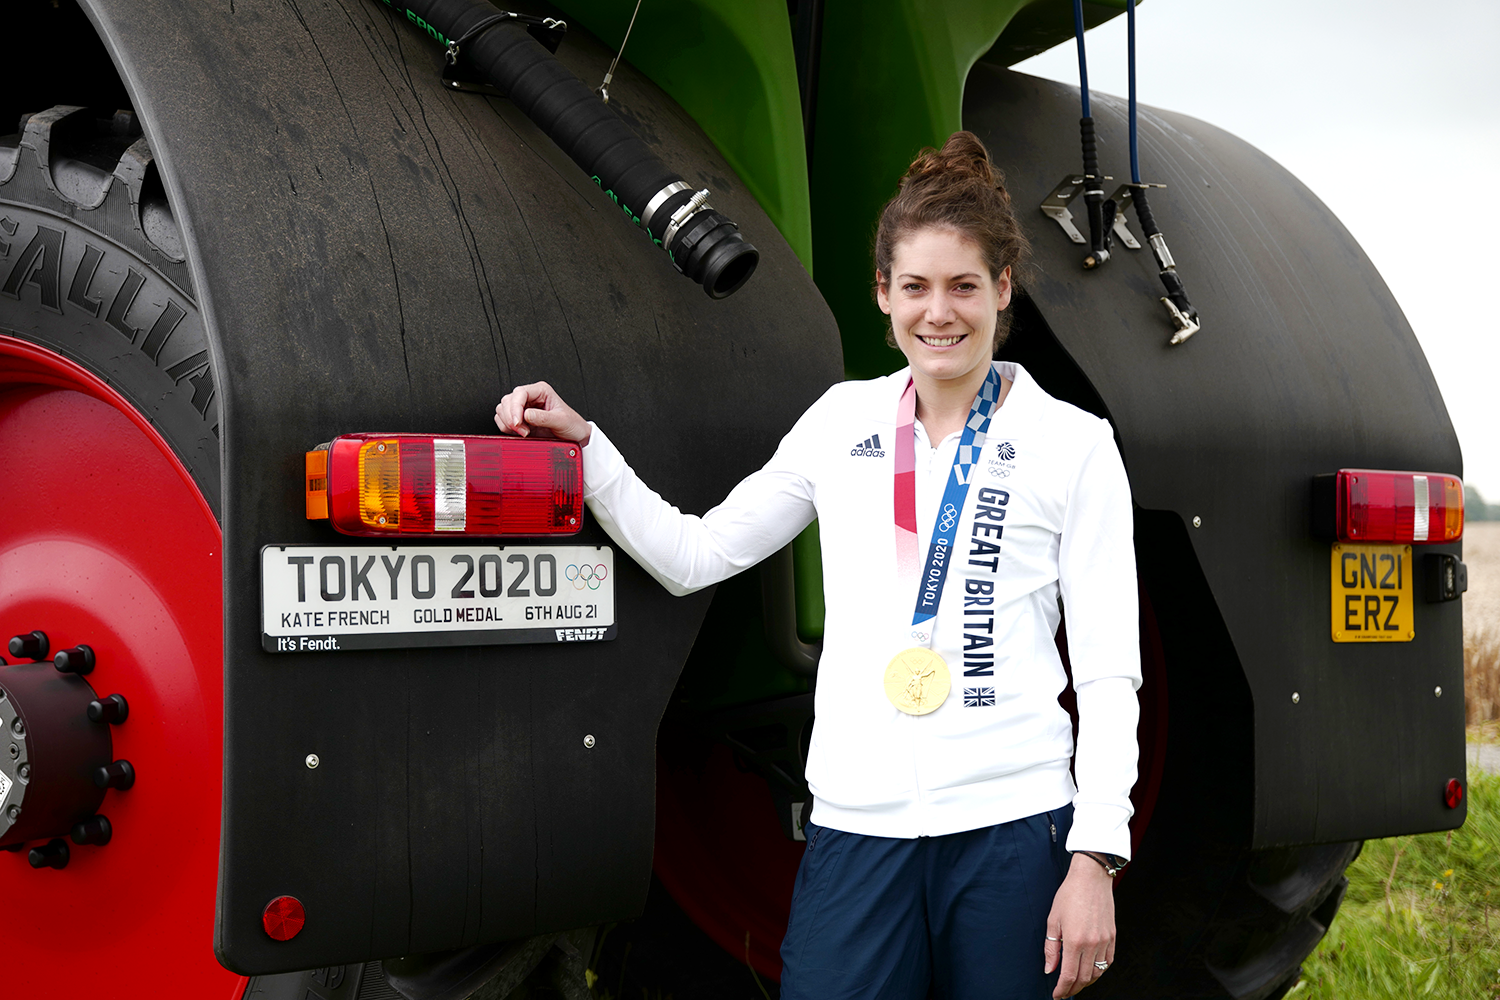 Olympic Gold commemorated by new farm sprayer